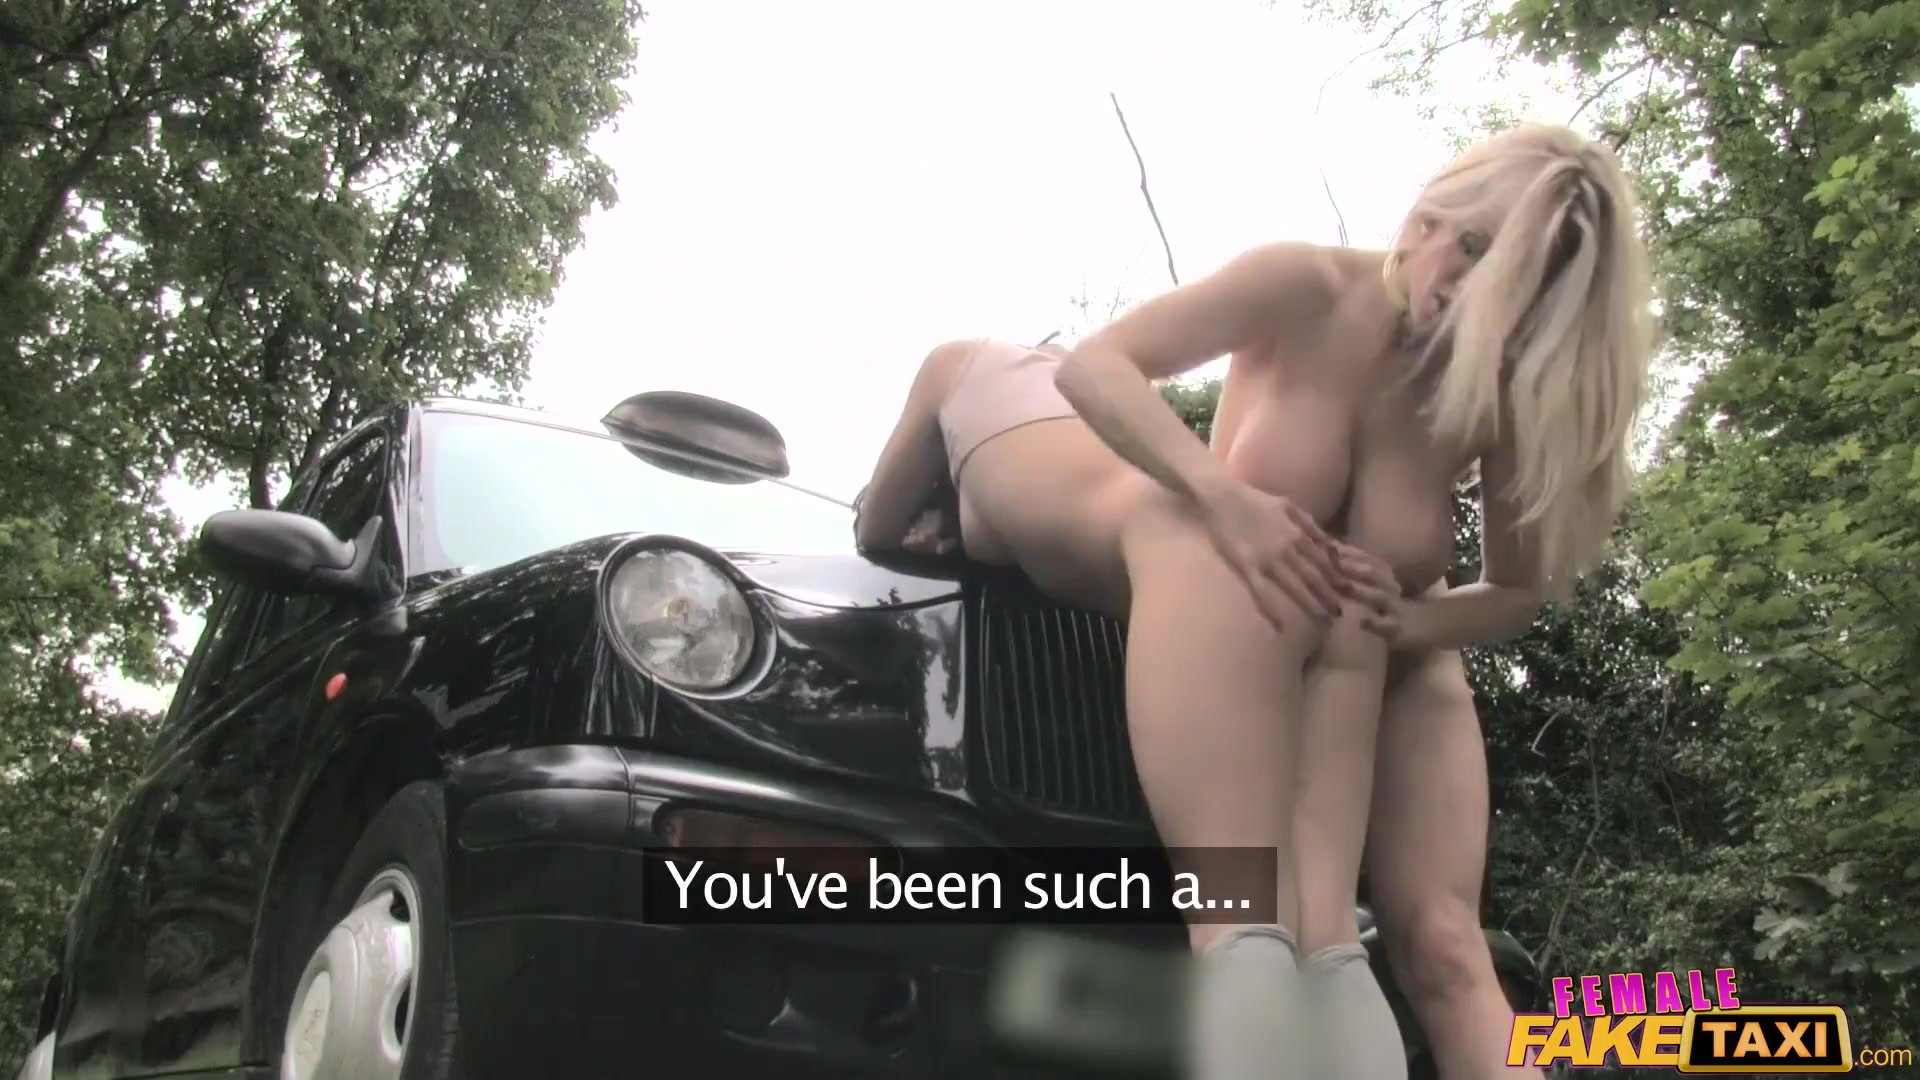 Pussy licking/girl fakehub in encounters lesbians